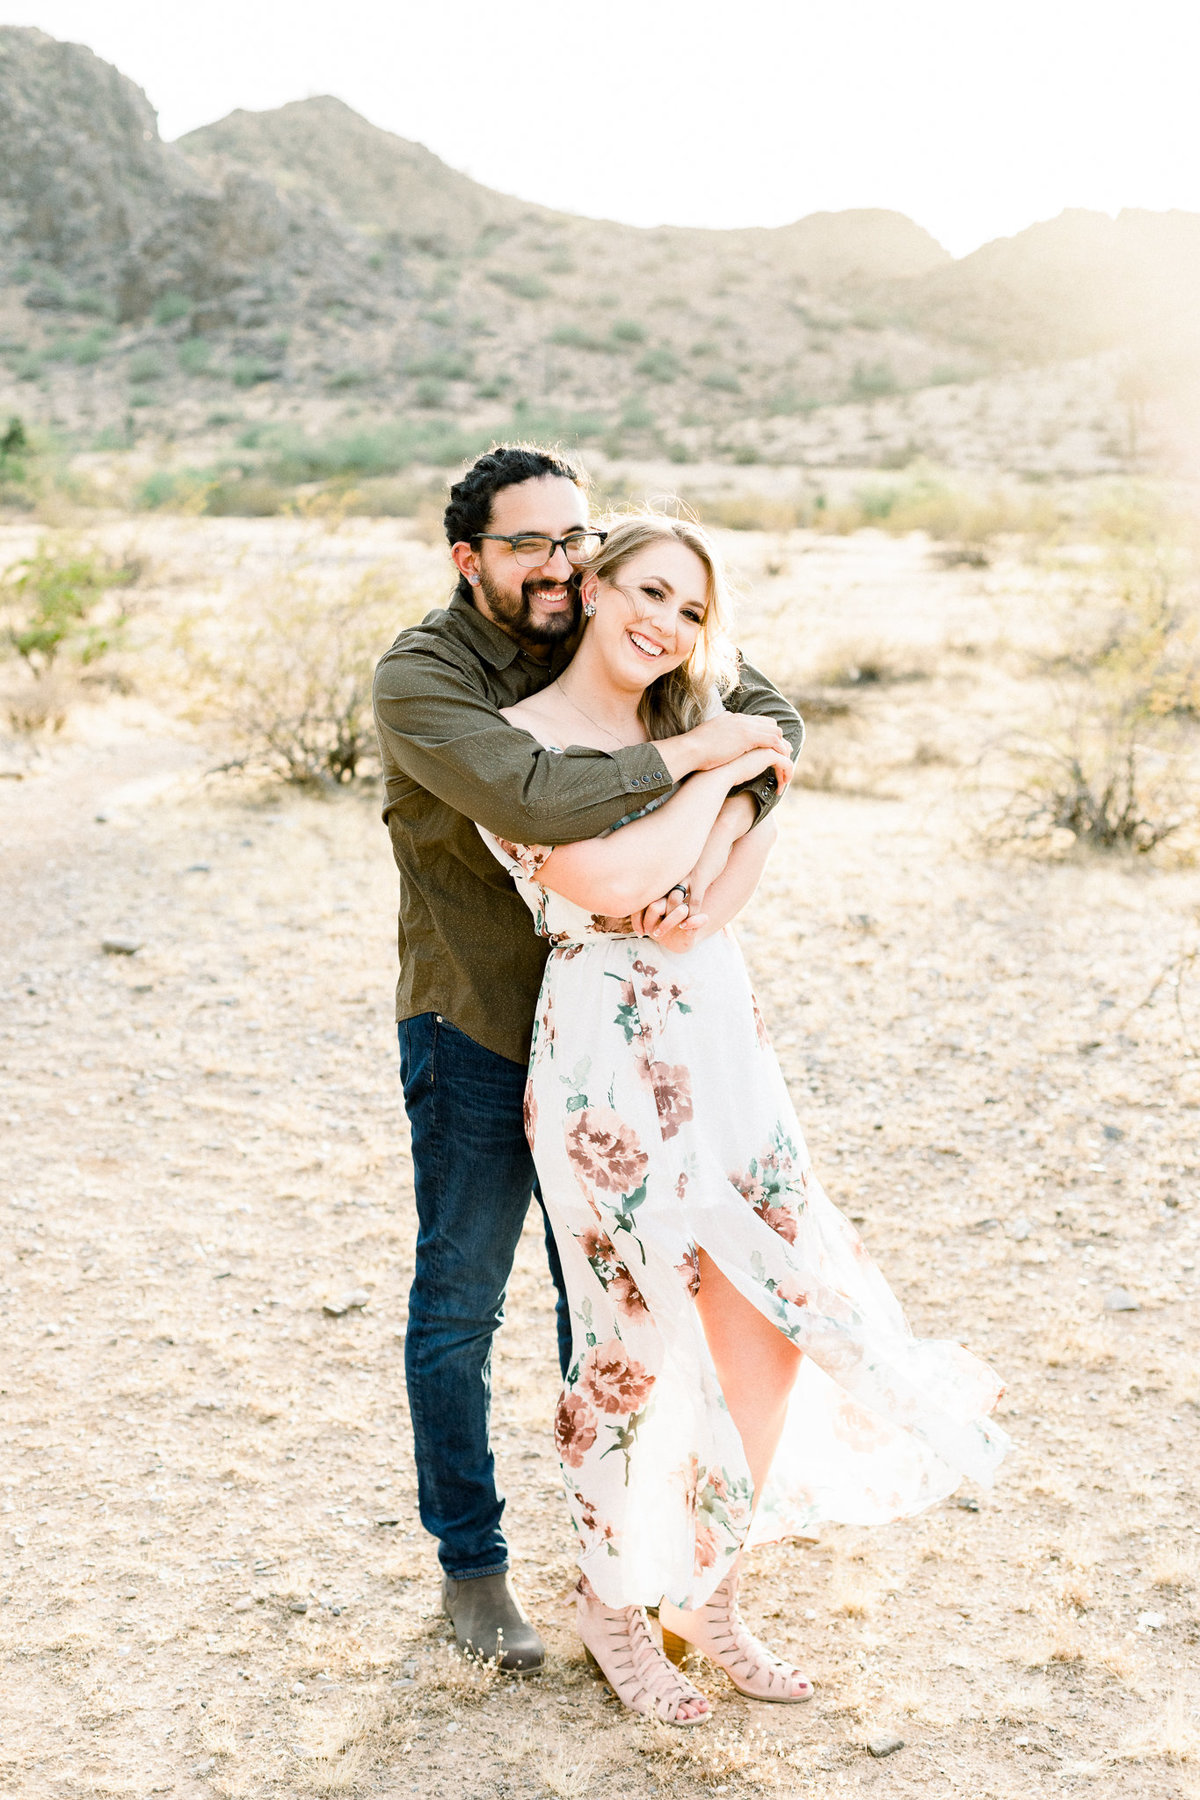 Brooke_Juan_Phoenix_Desert_Engagement_Caitlin_Audrey_Photography (1 of 1)